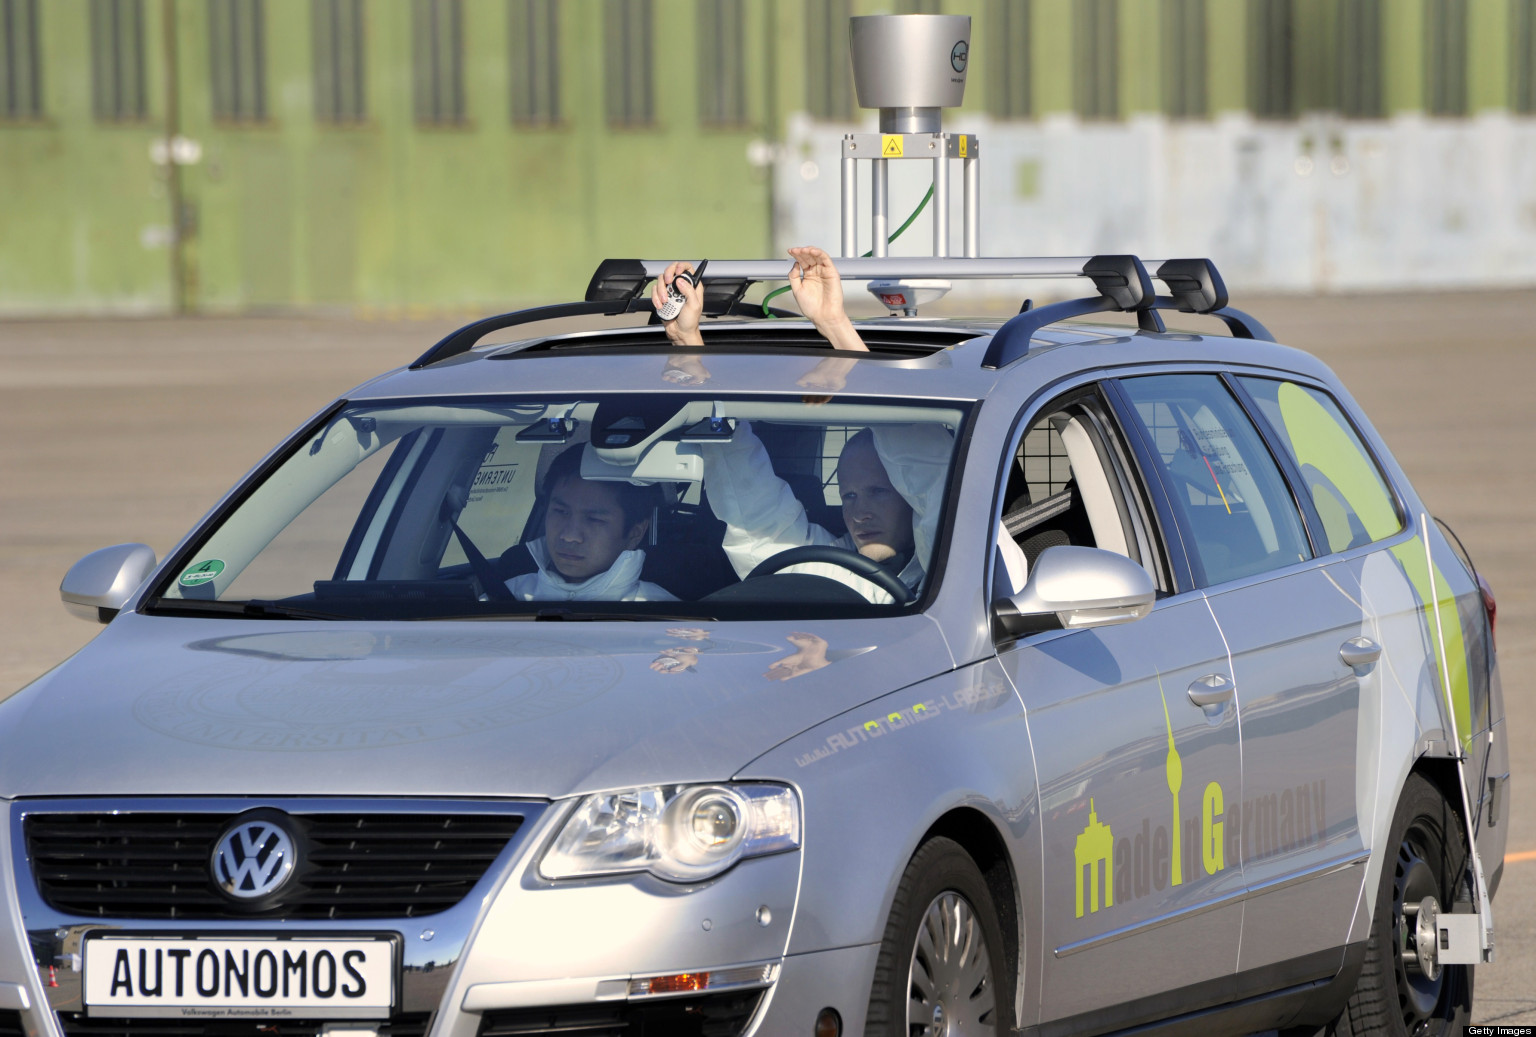 Driverless Cars Could Be Hacked By '14-Year-Old From Indonesia,' Senator Warns